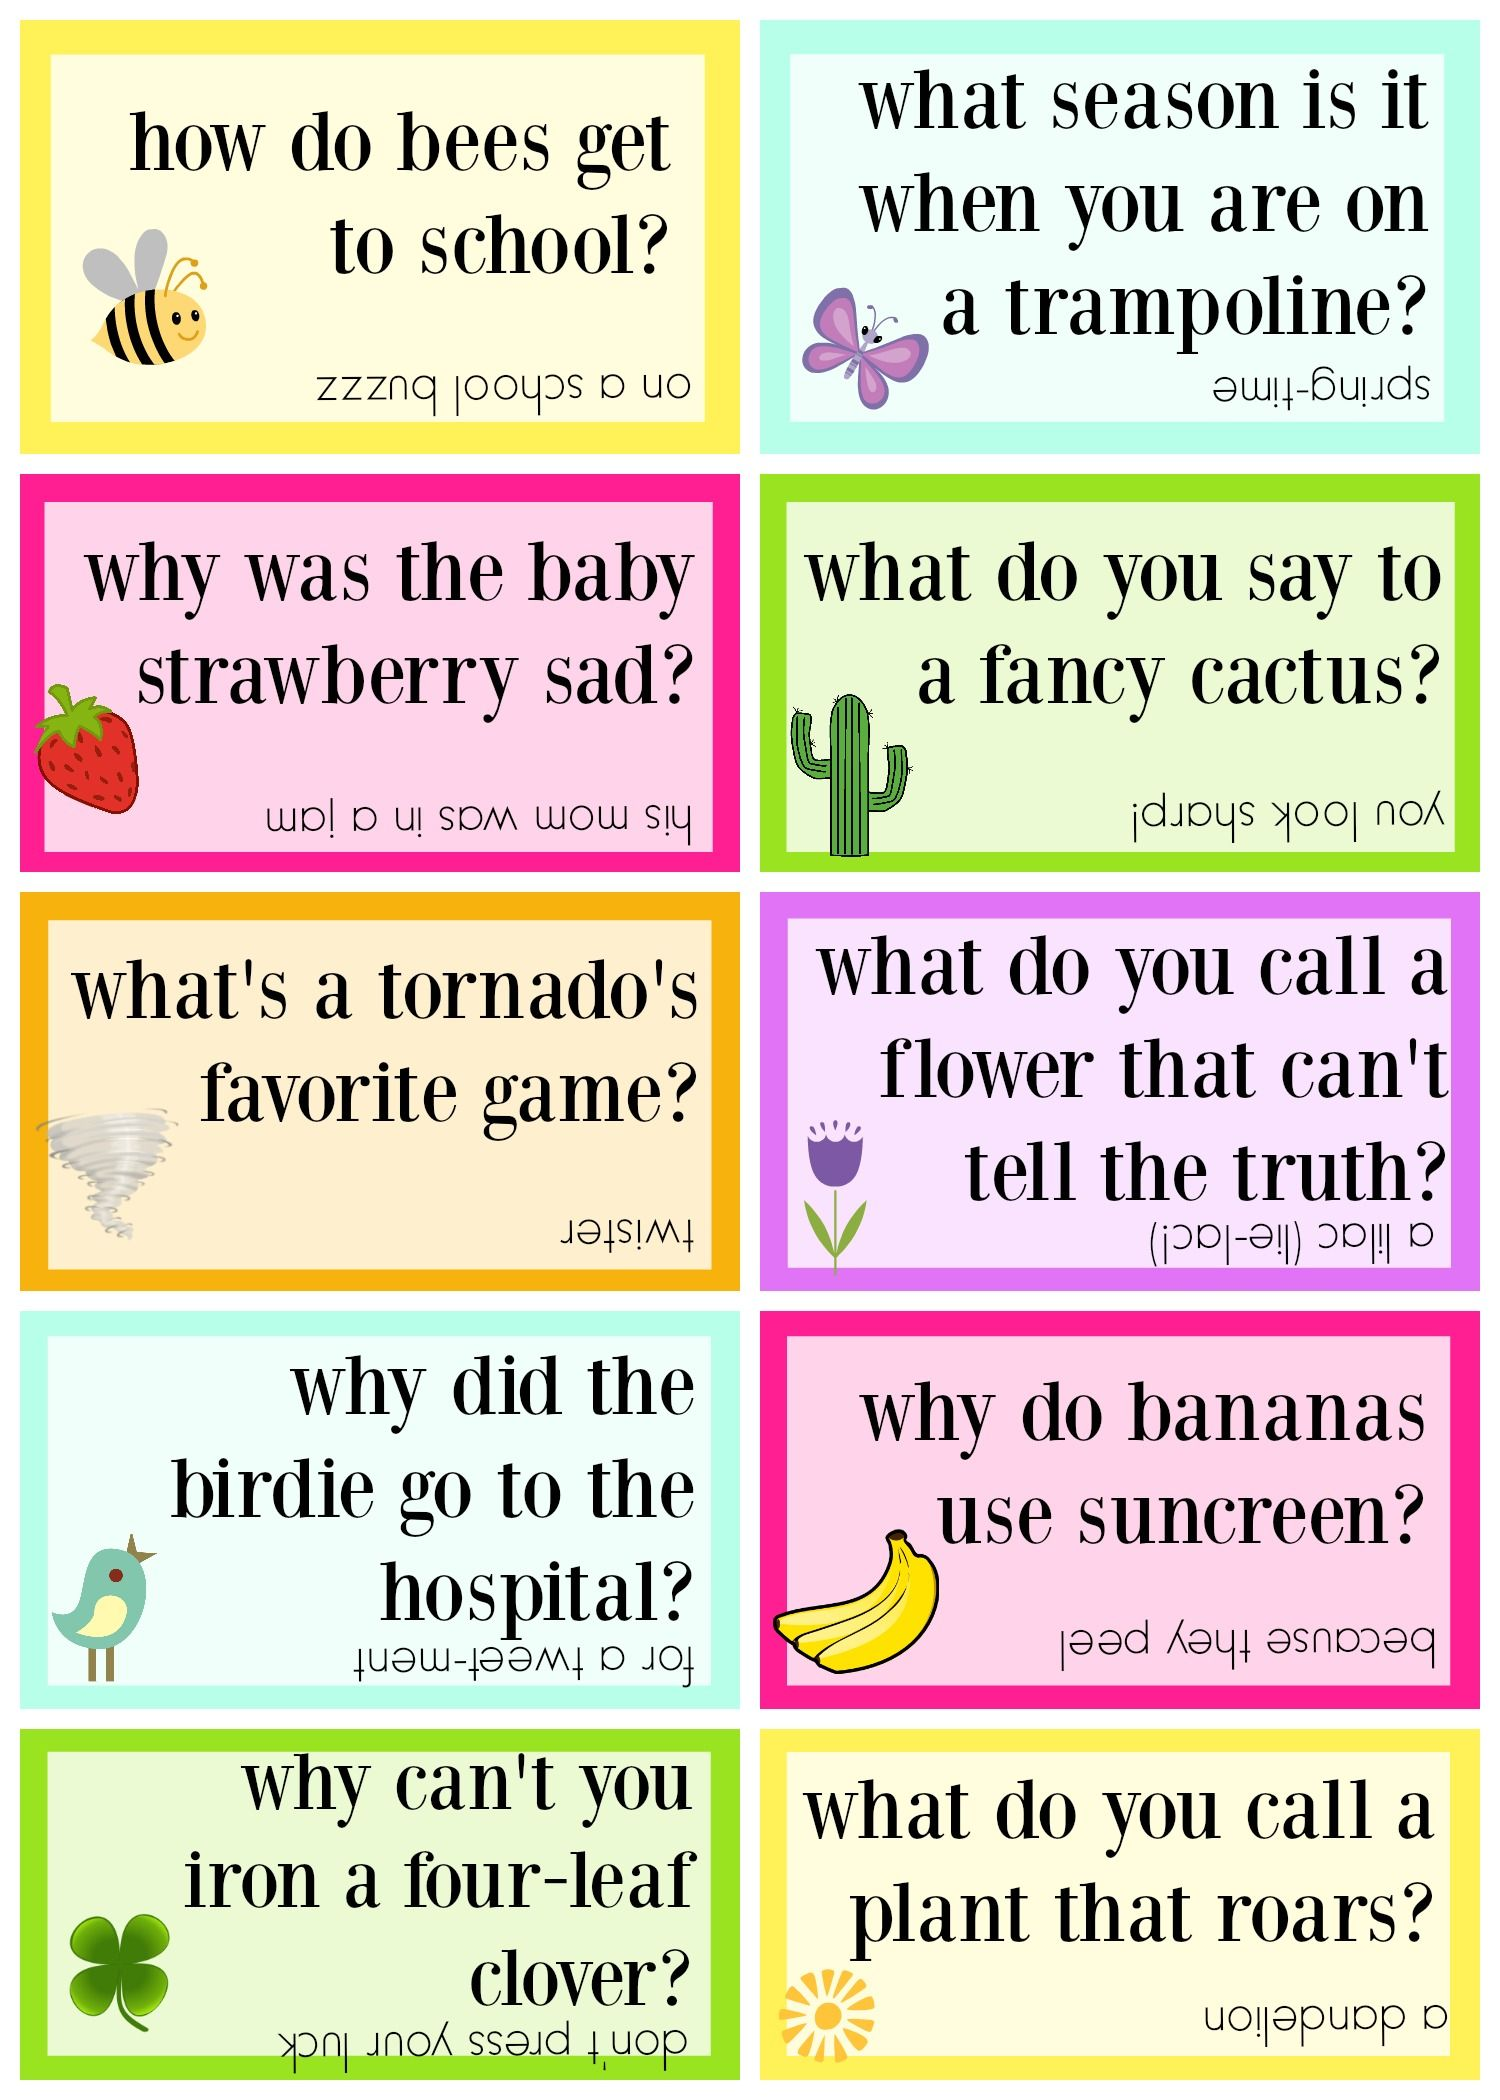 graphic regarding Printable Jokes for Kids identify Lunch Box Jokes for Spring, Cost-free PRINTABLE Lunch Box Jokes